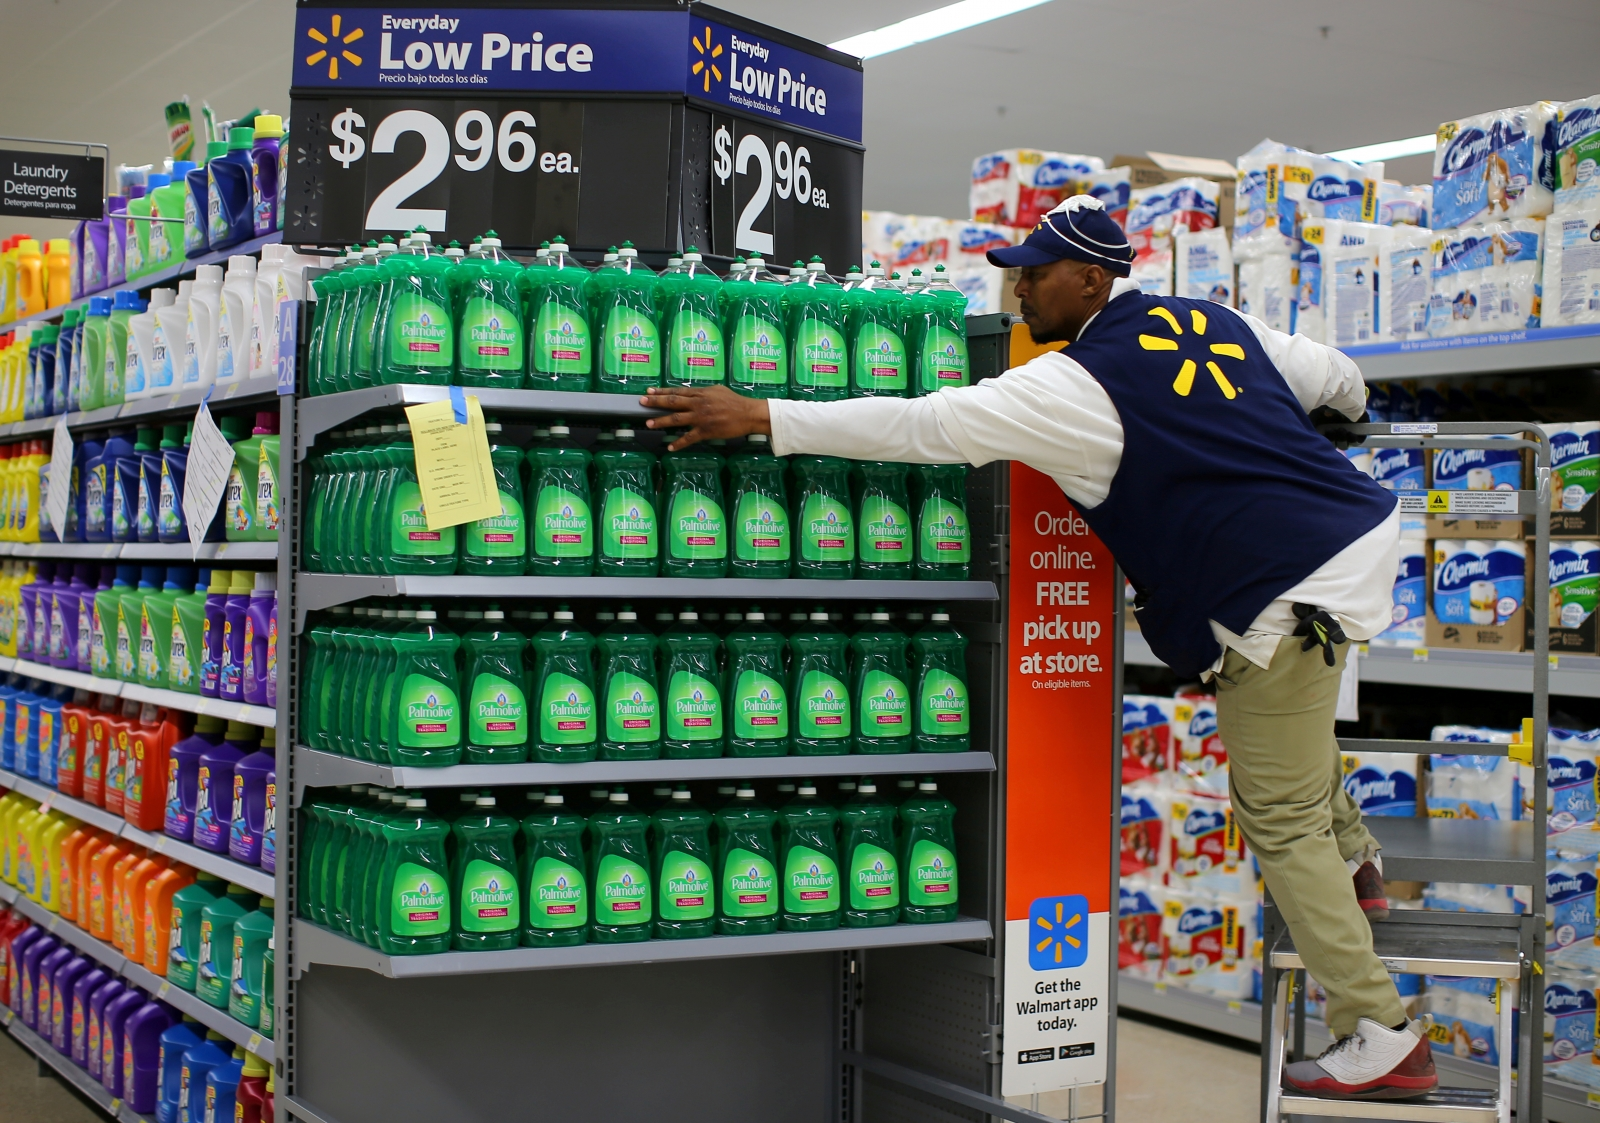 Shop assistant restocking shelves at Walmart